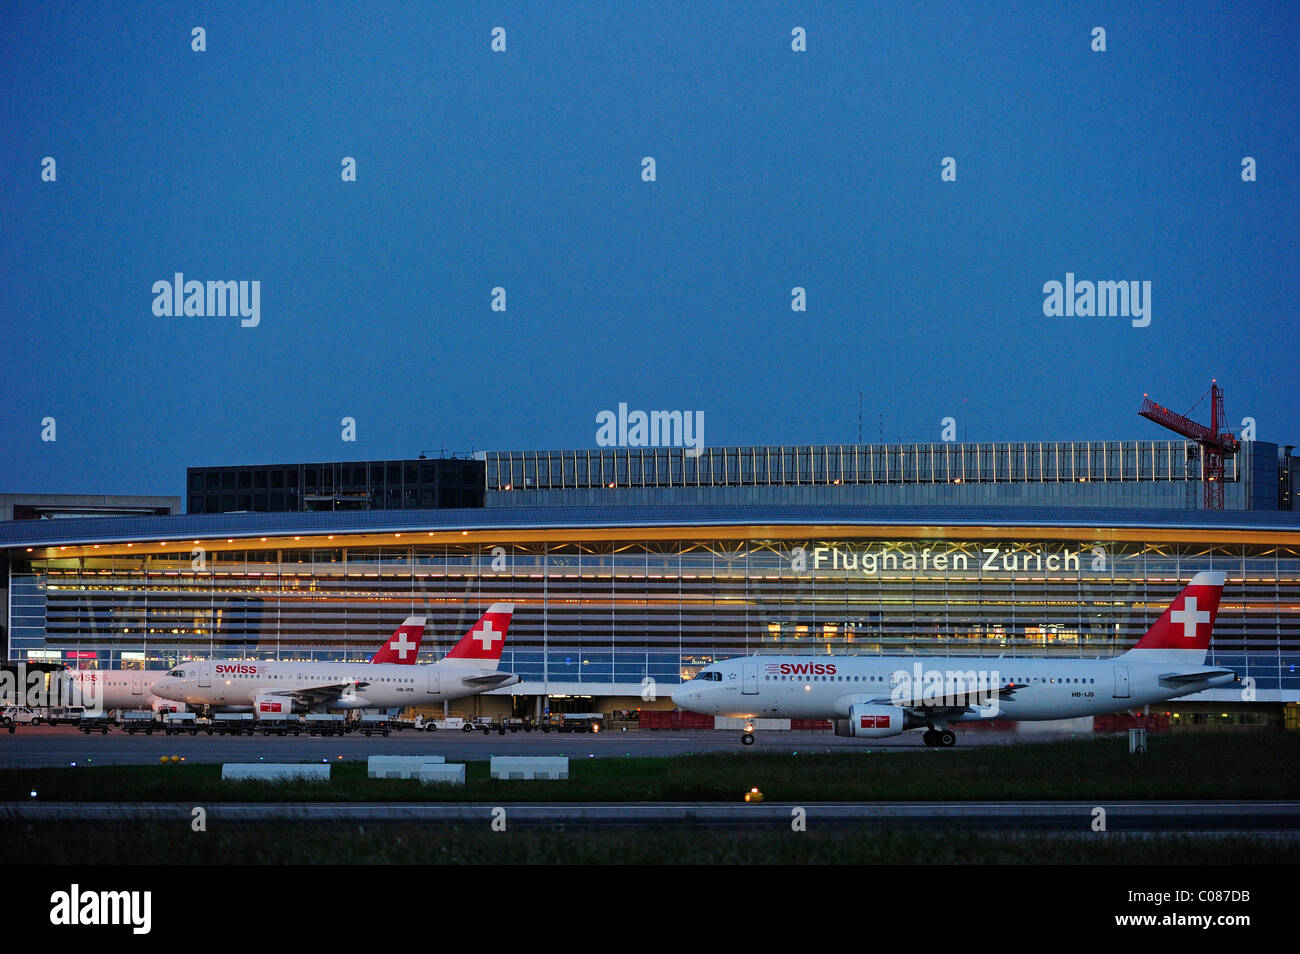 Check-in hall for all passengers, Zurich Airport, Switzerland, Europa - Stock Image